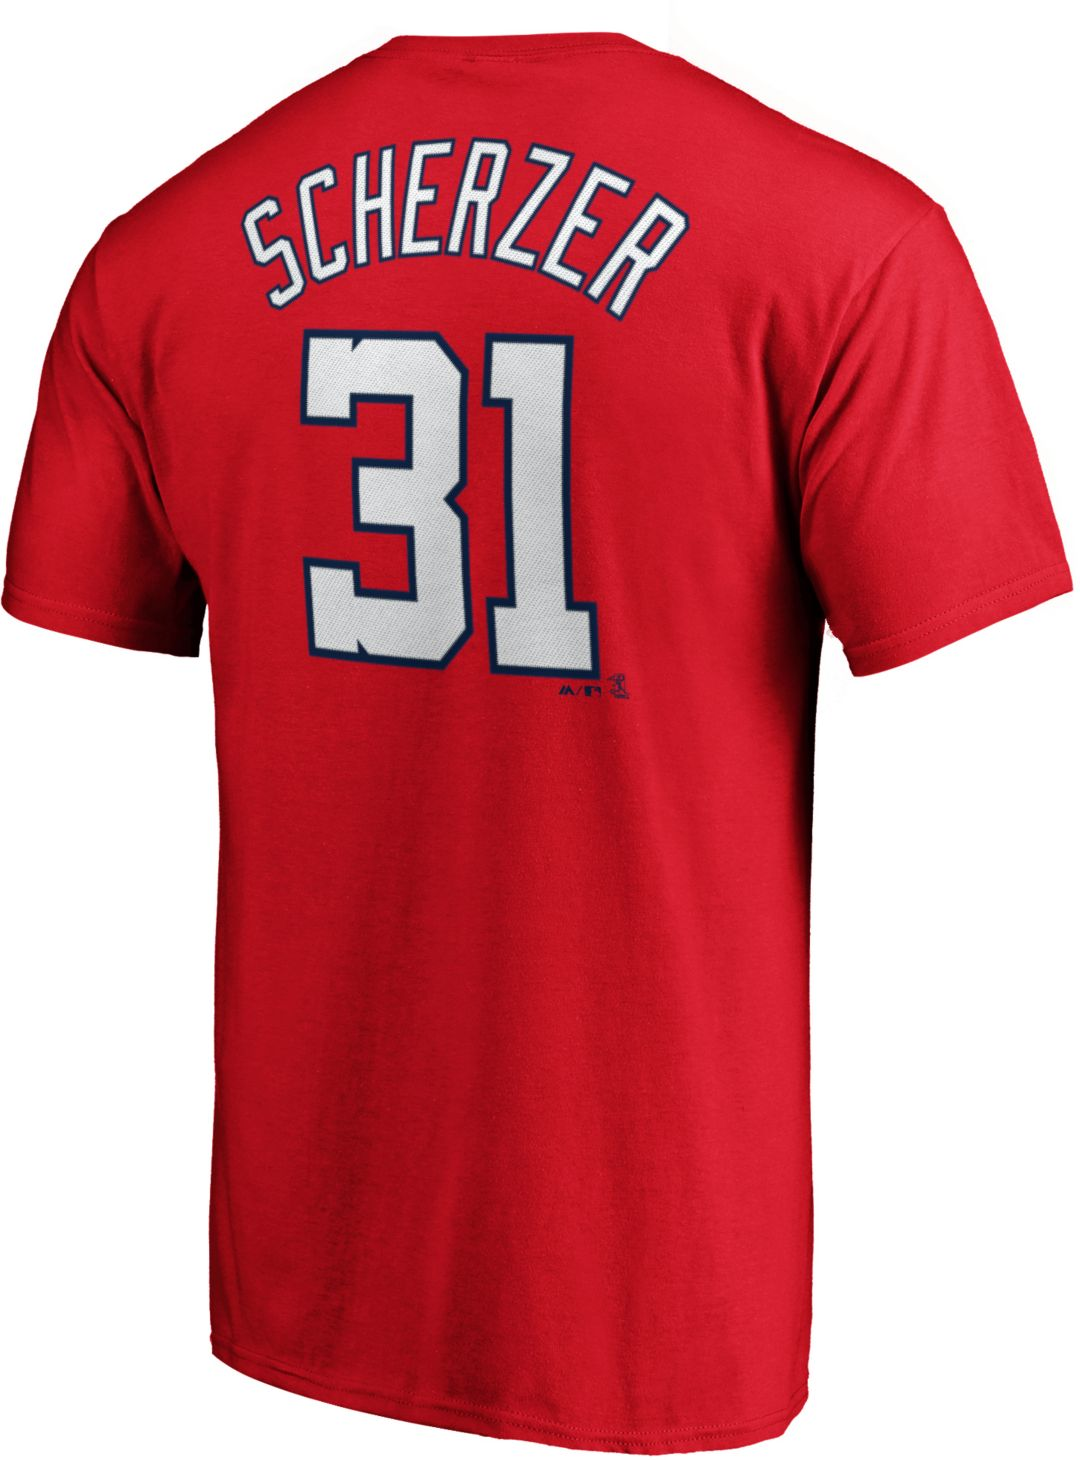 info for 39642 1743c Majestic Men's Washington Nationals Max Scherzer #31 Red T-Shirt